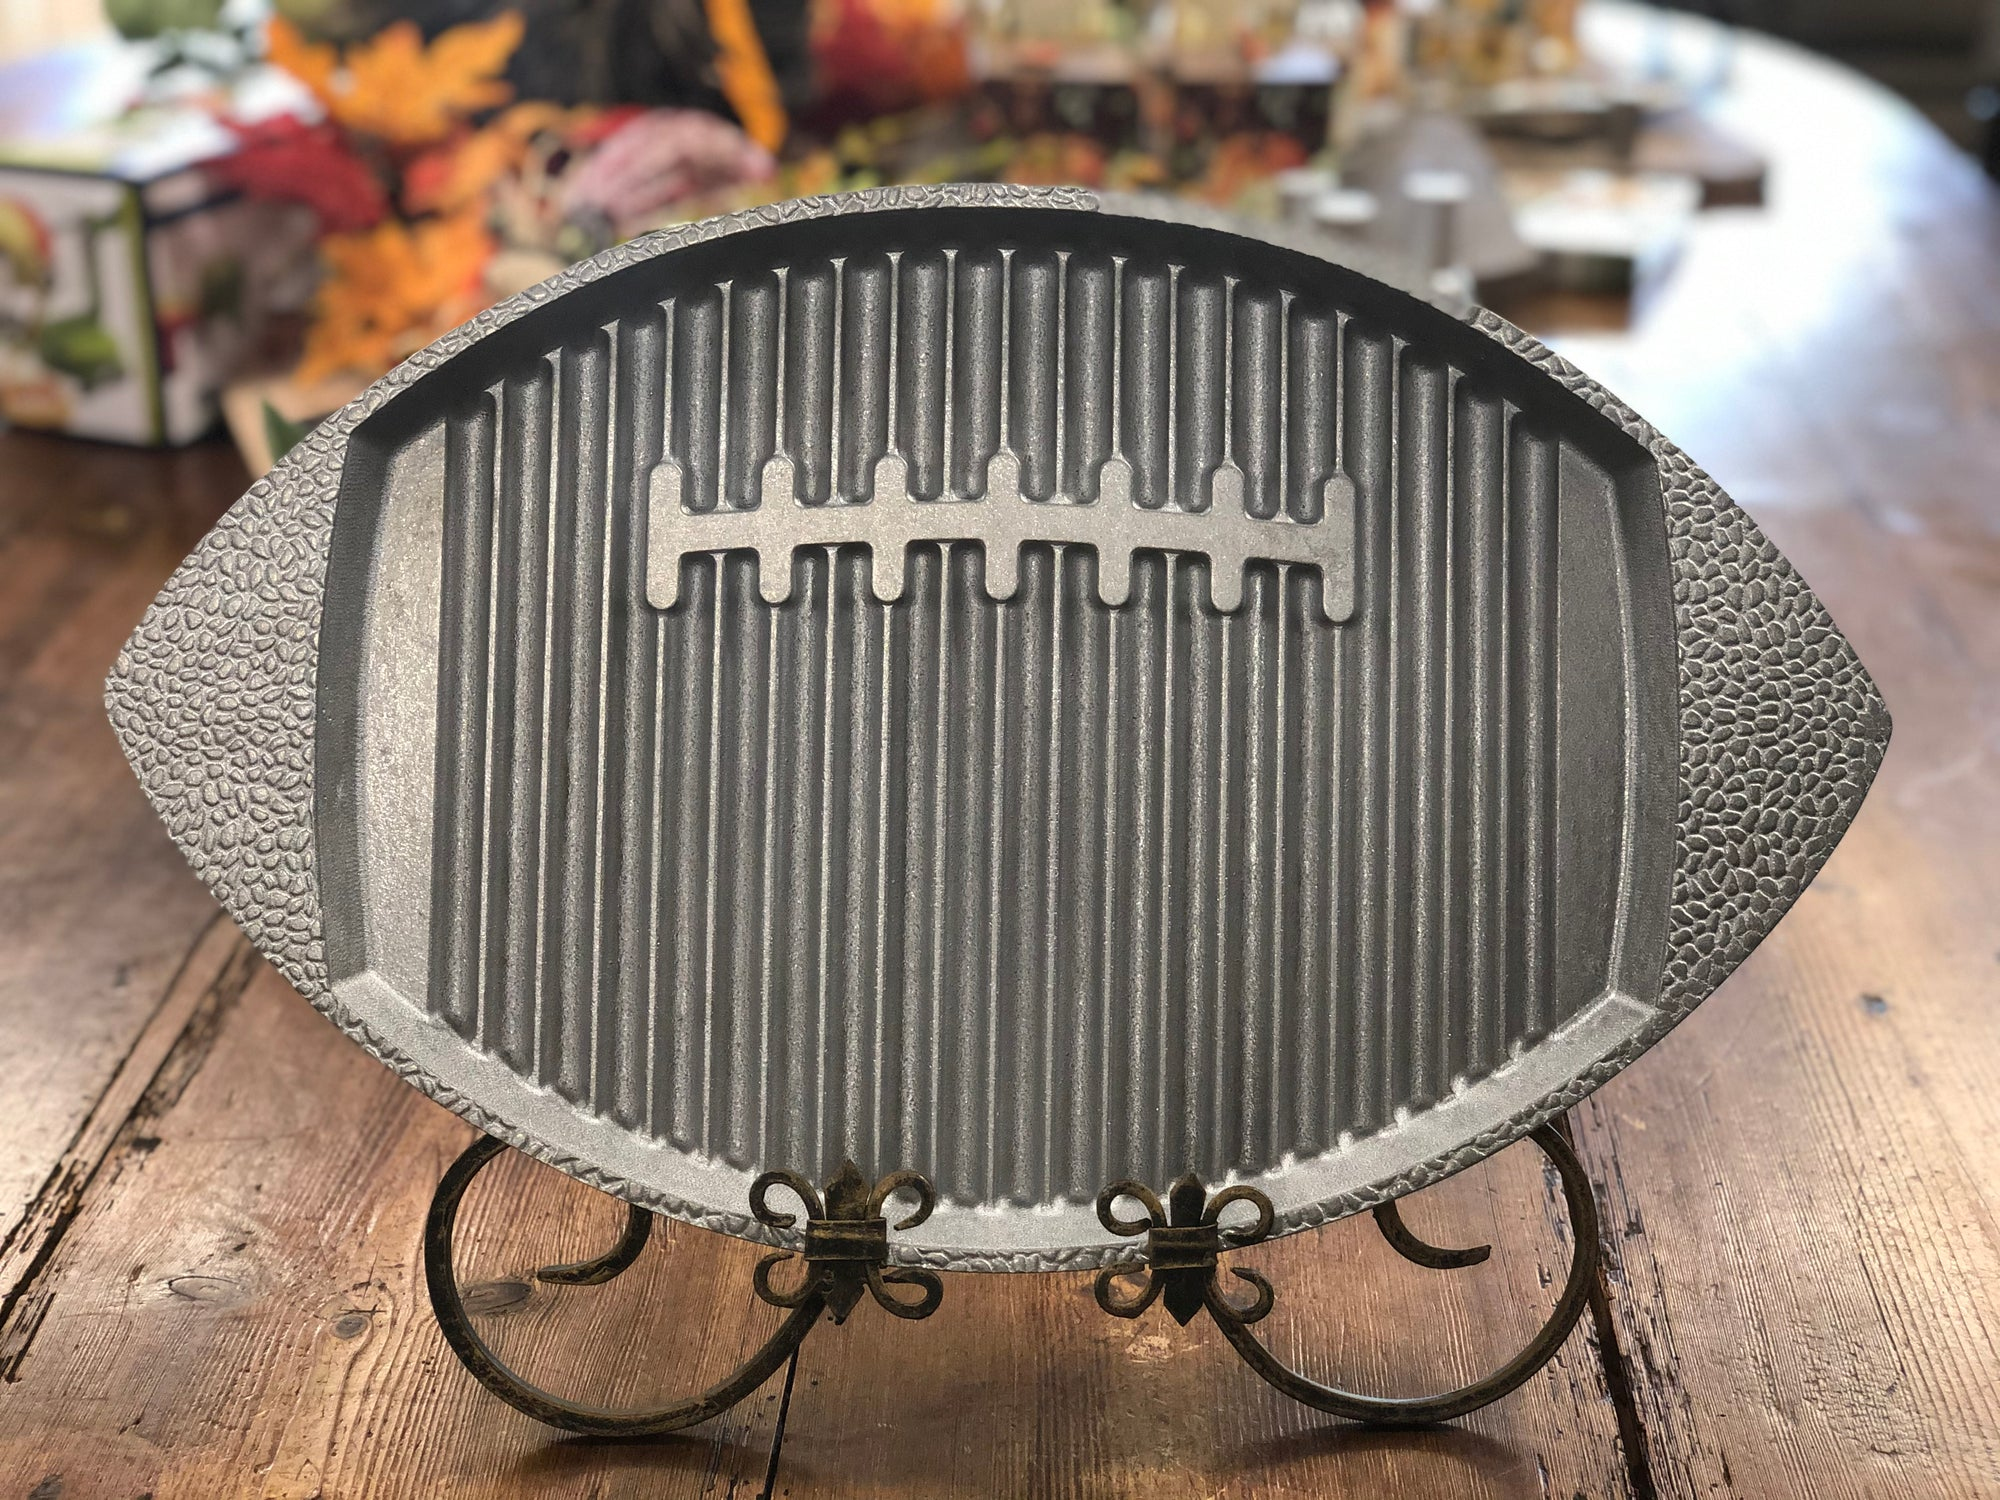 Gourmet Grillware for Your Next Tailgate!